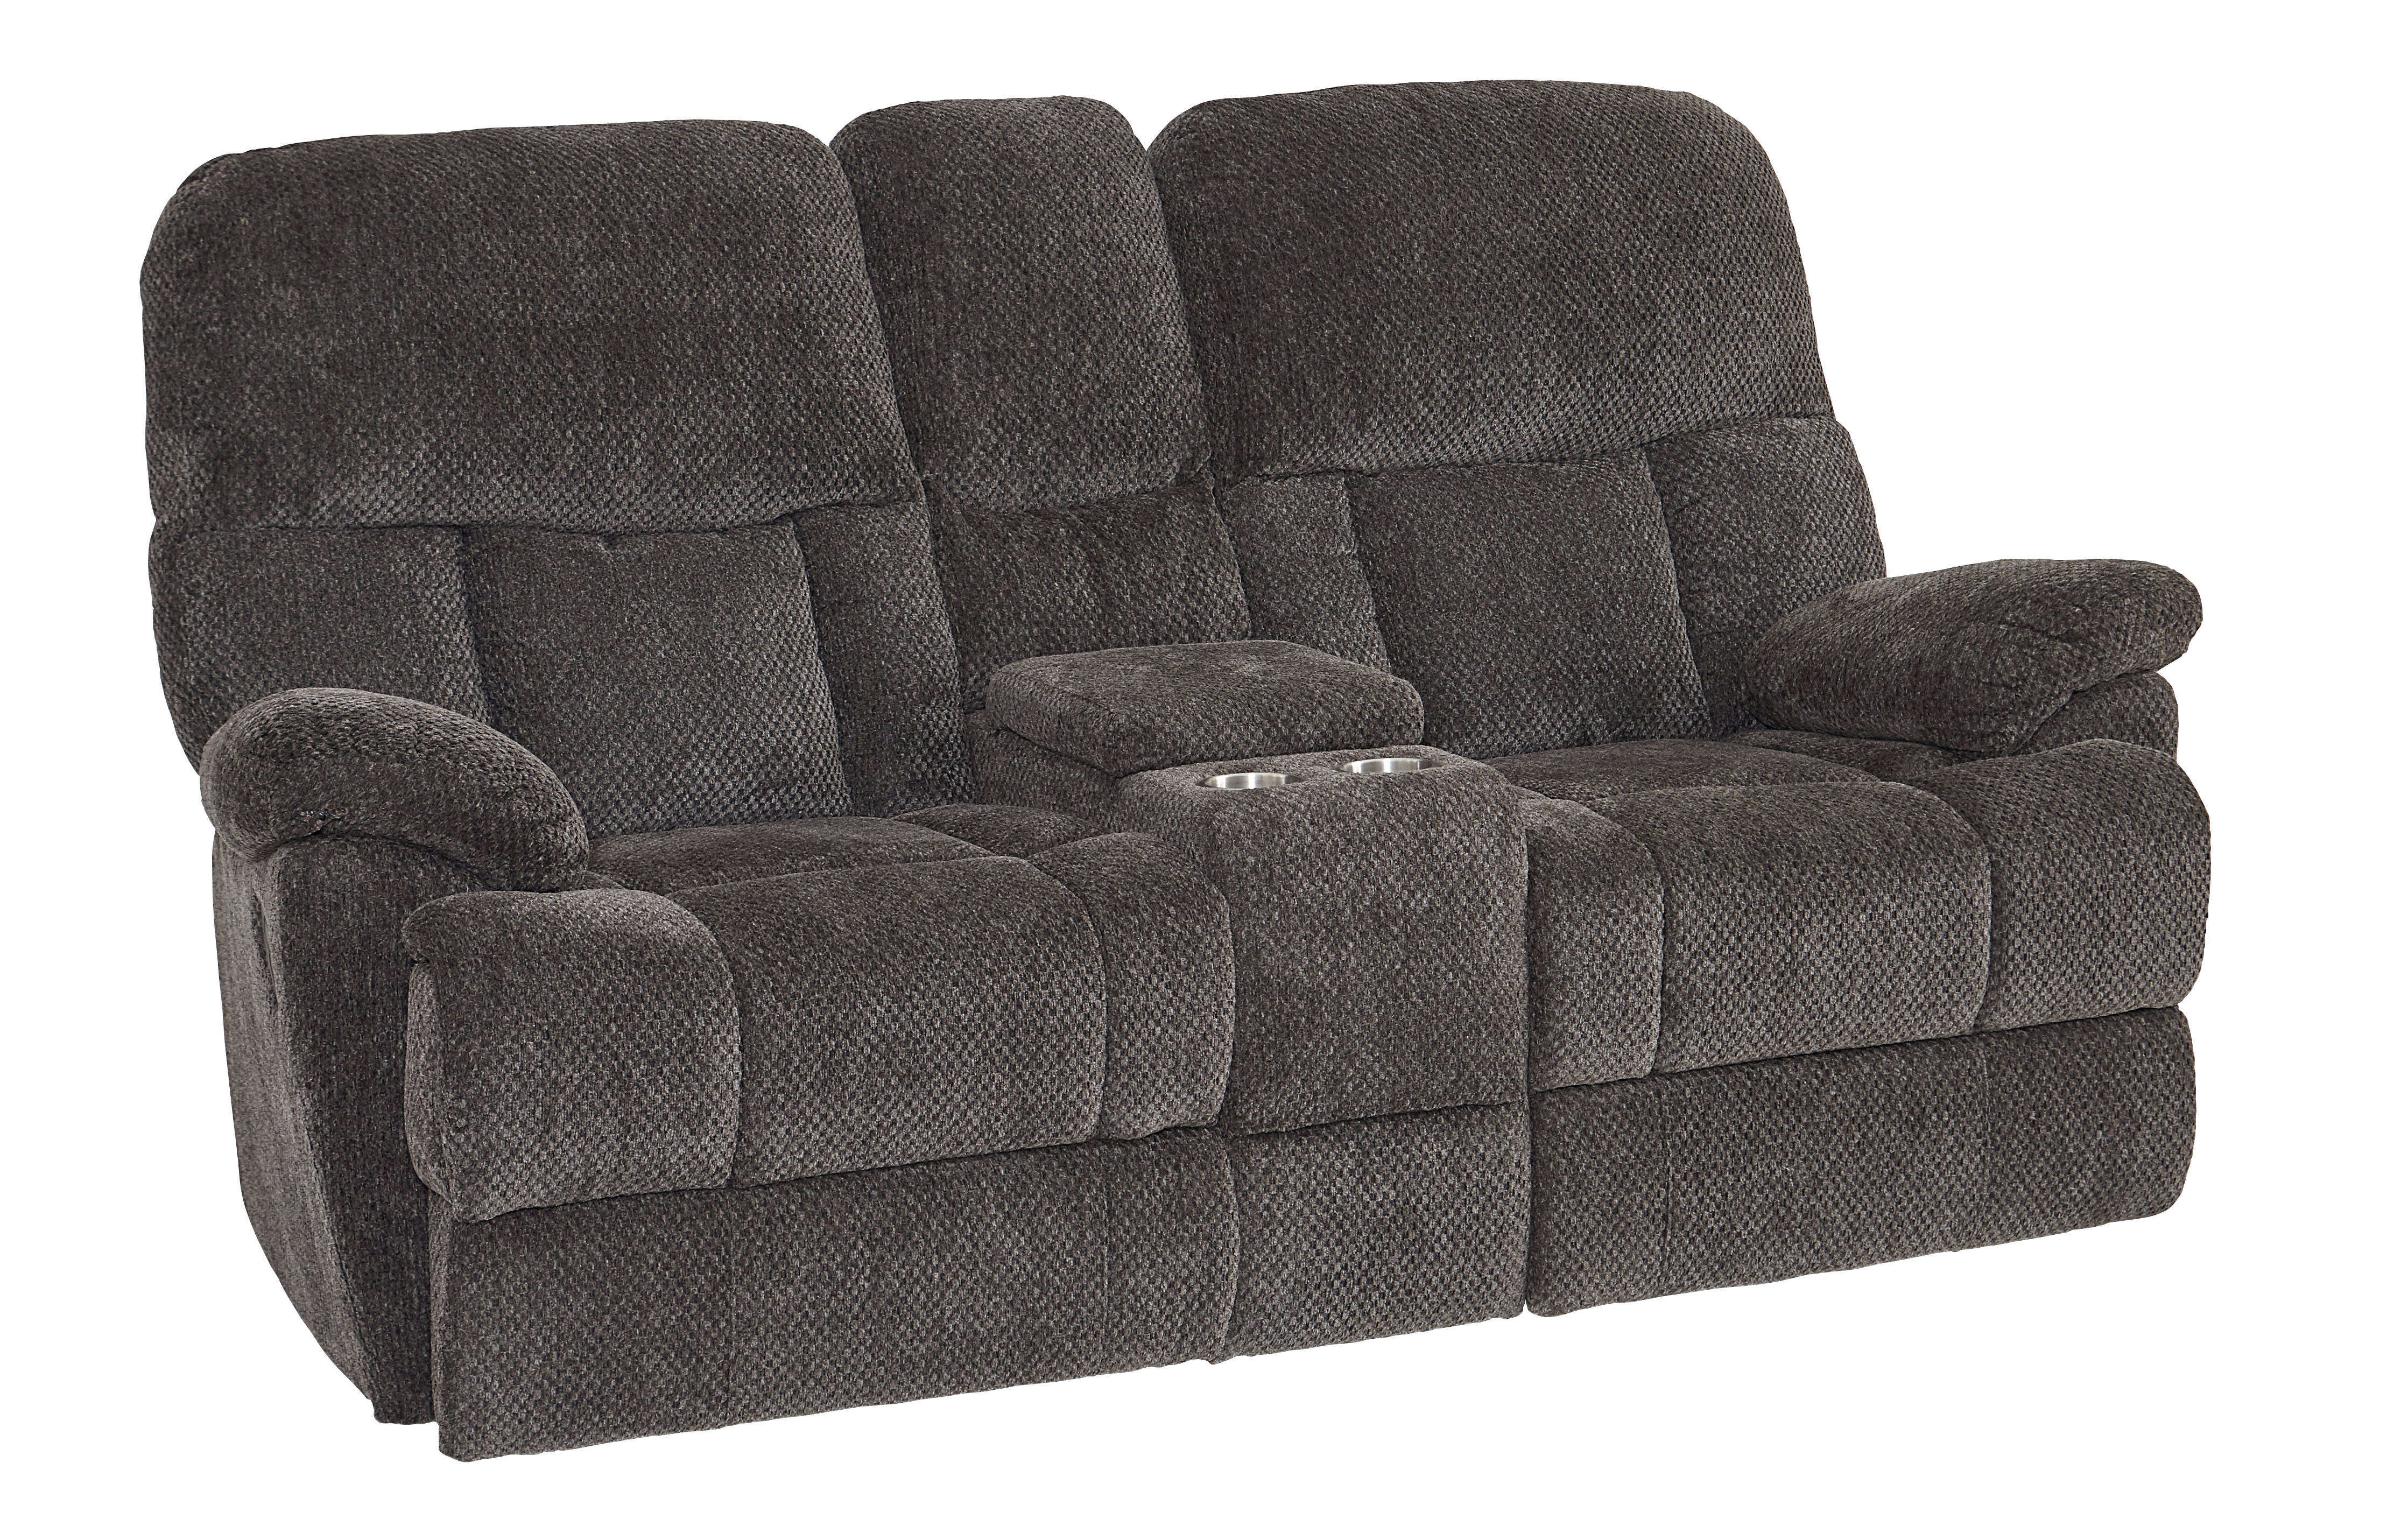 Standard Furniture Harmon Ash Manual Console Loveseat Click To Enlarge ...